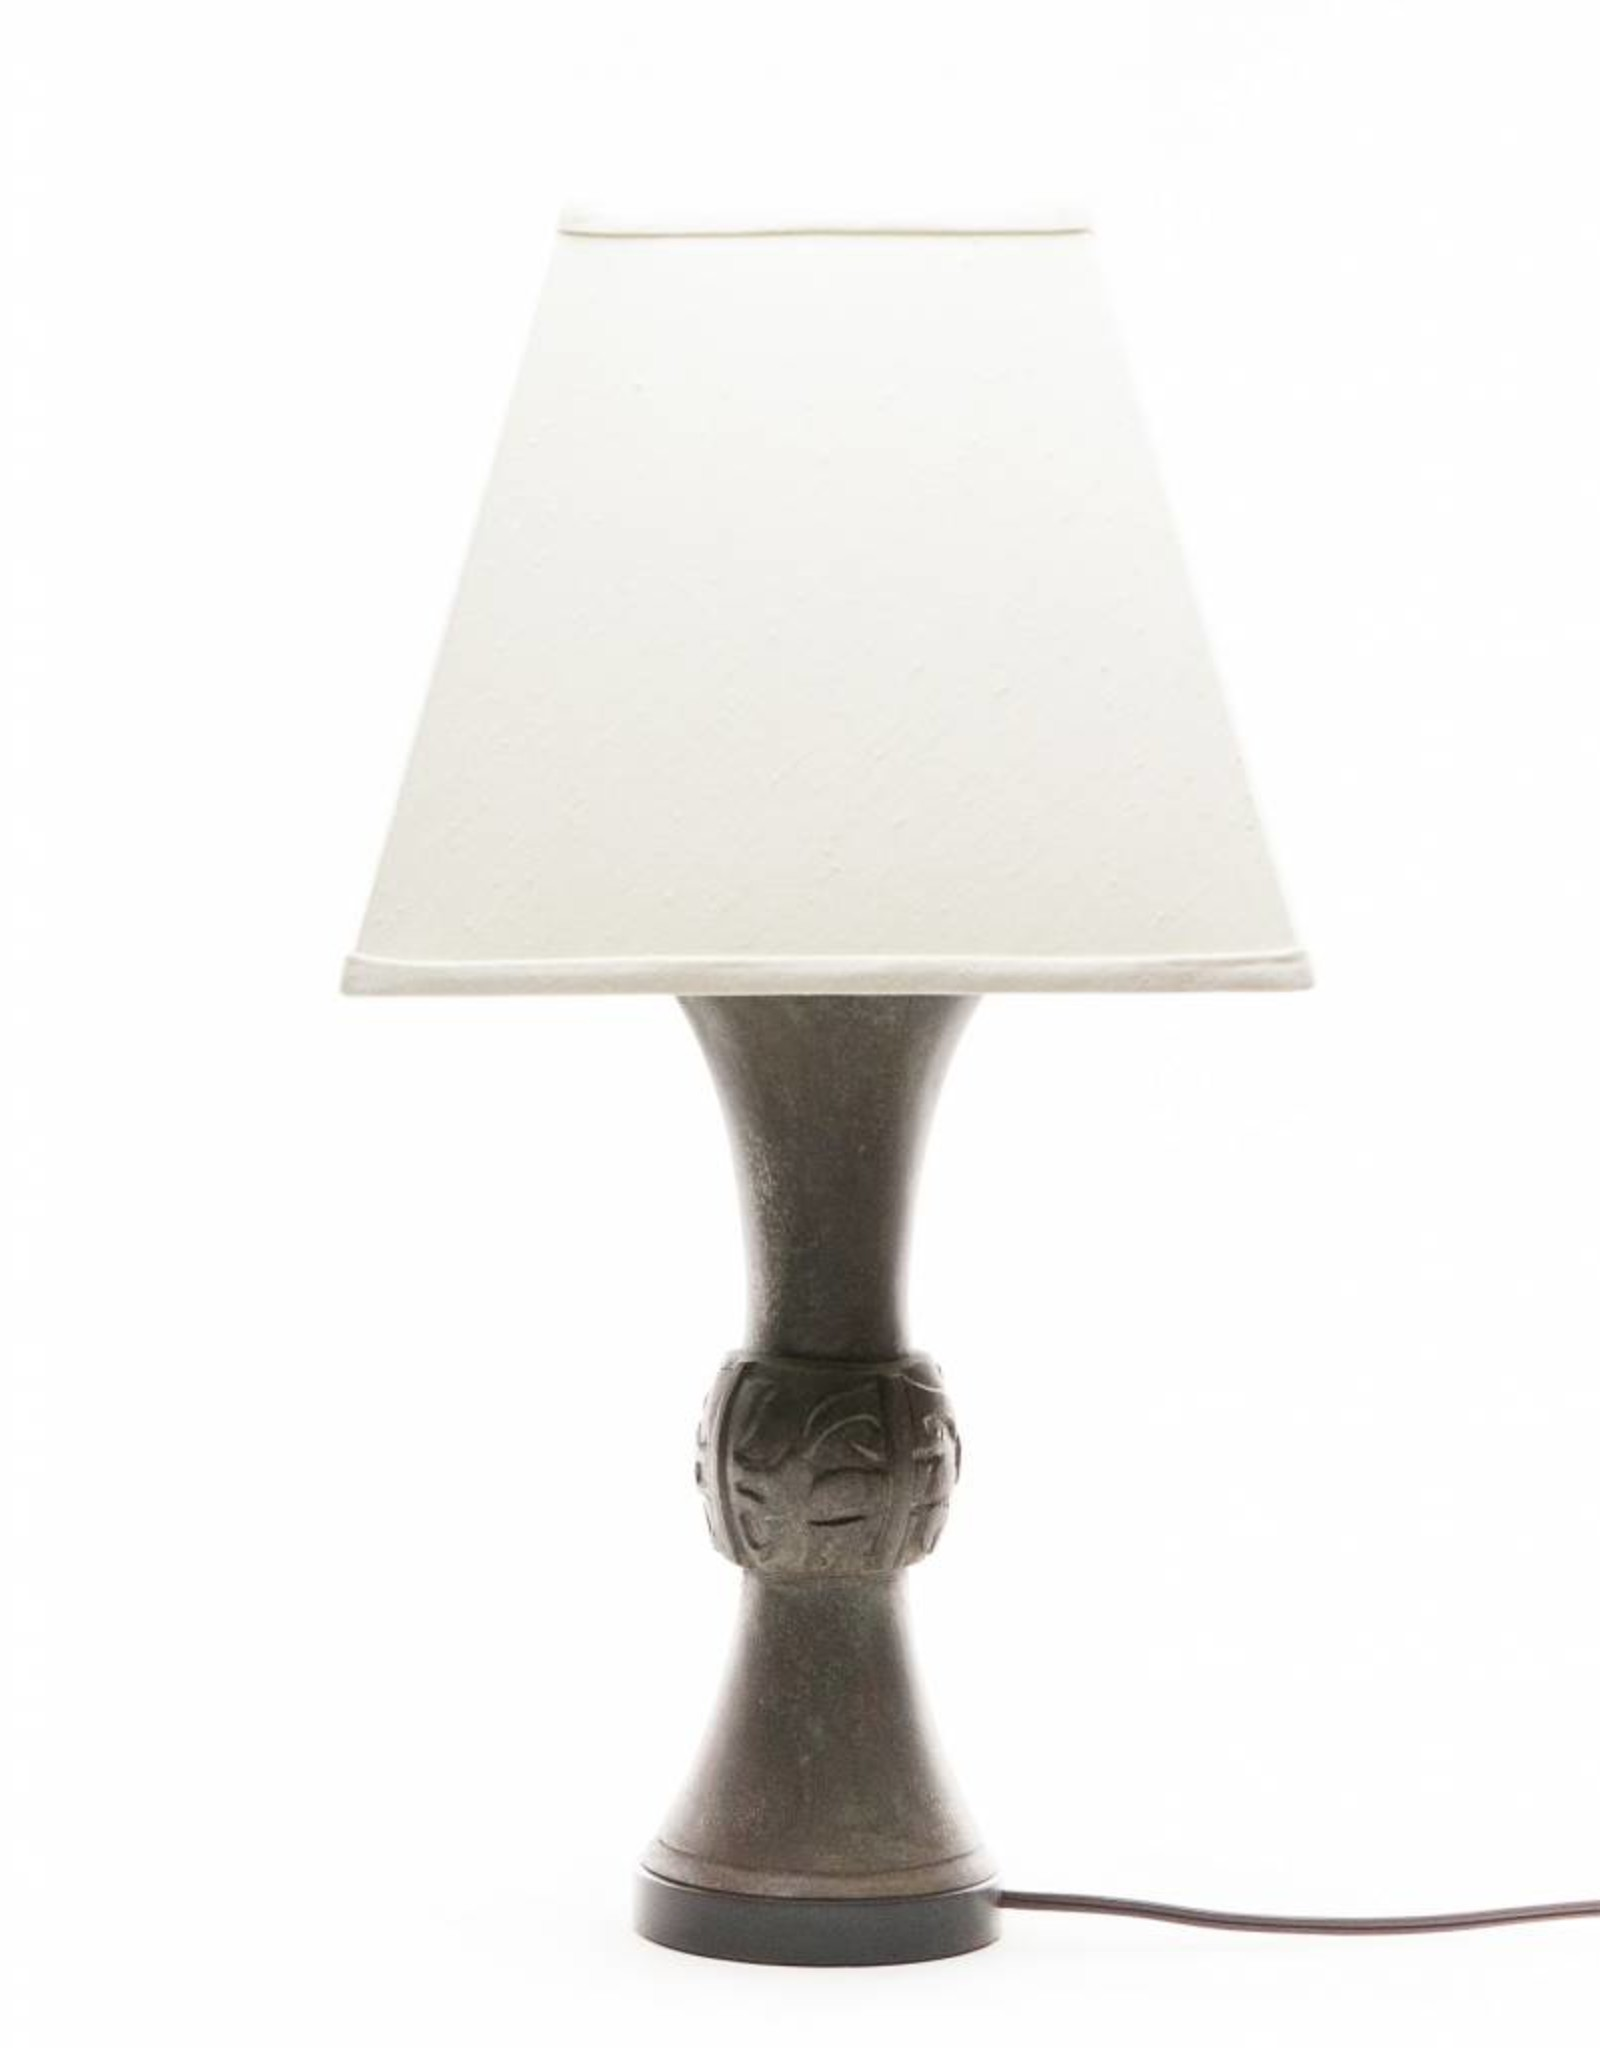 Lawrence & Scott Katana Table Lamp in Archaic Bronze